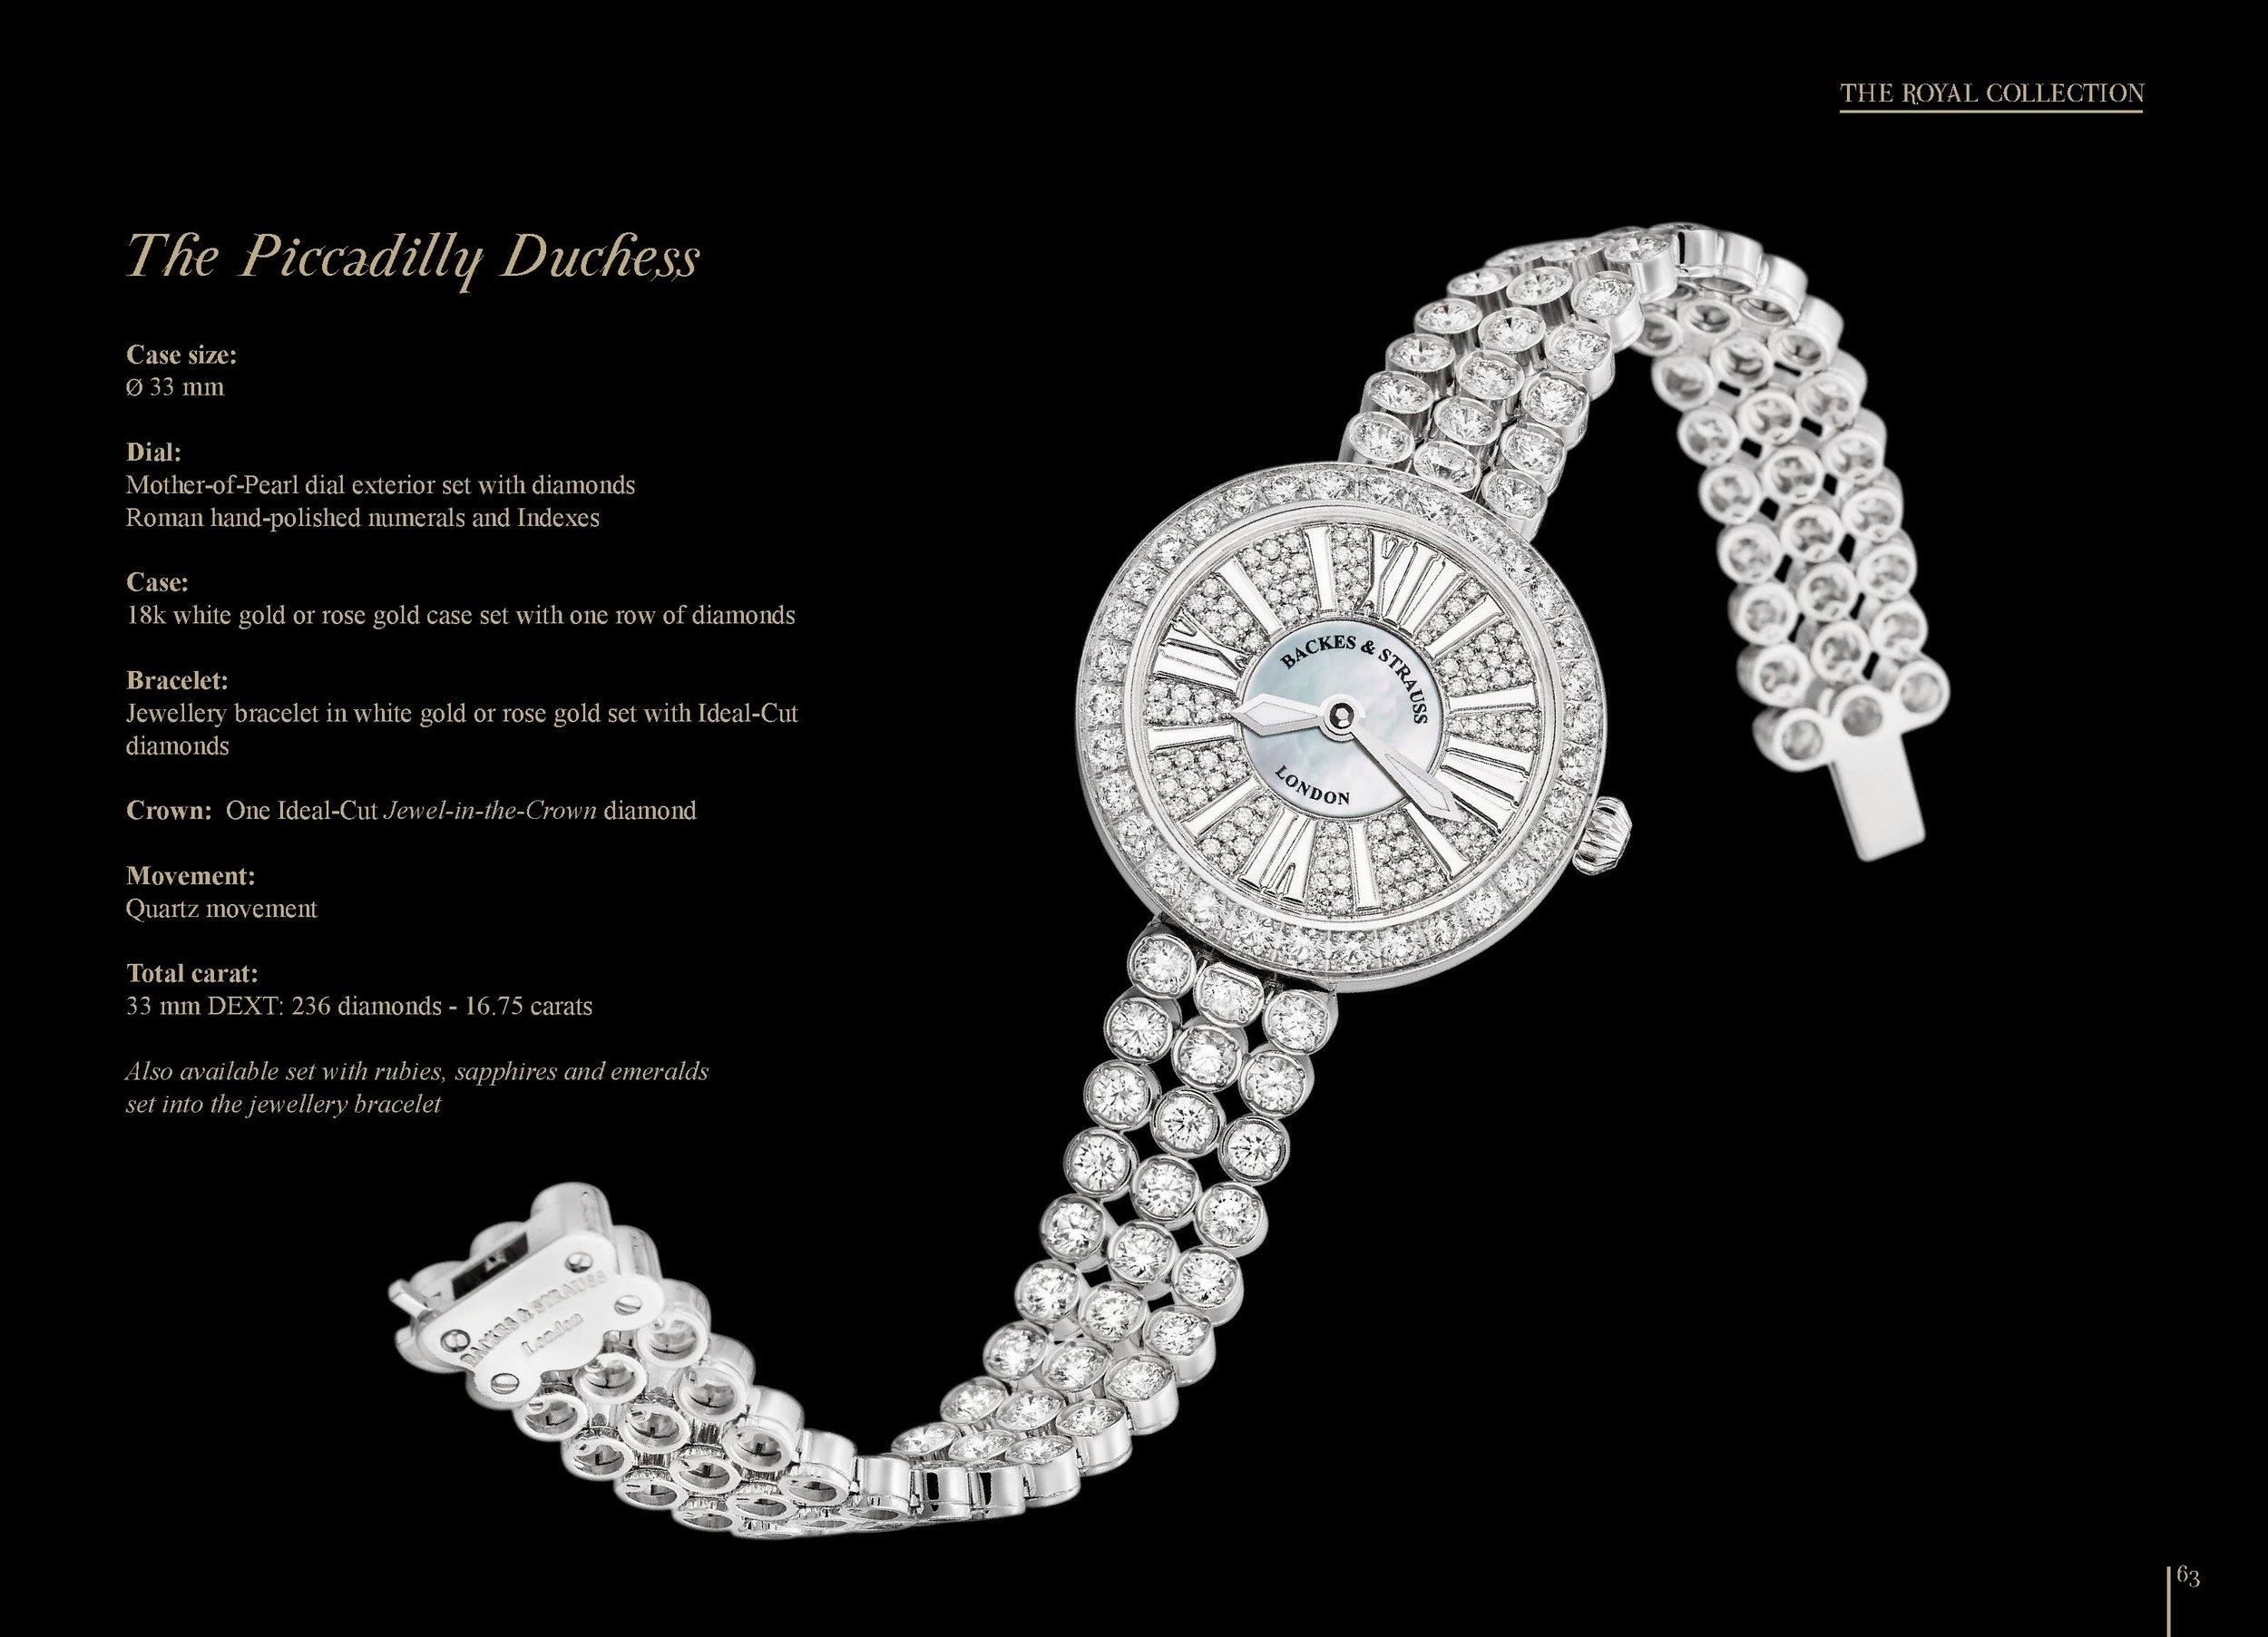 The Piccadilly Duchess iconic watch